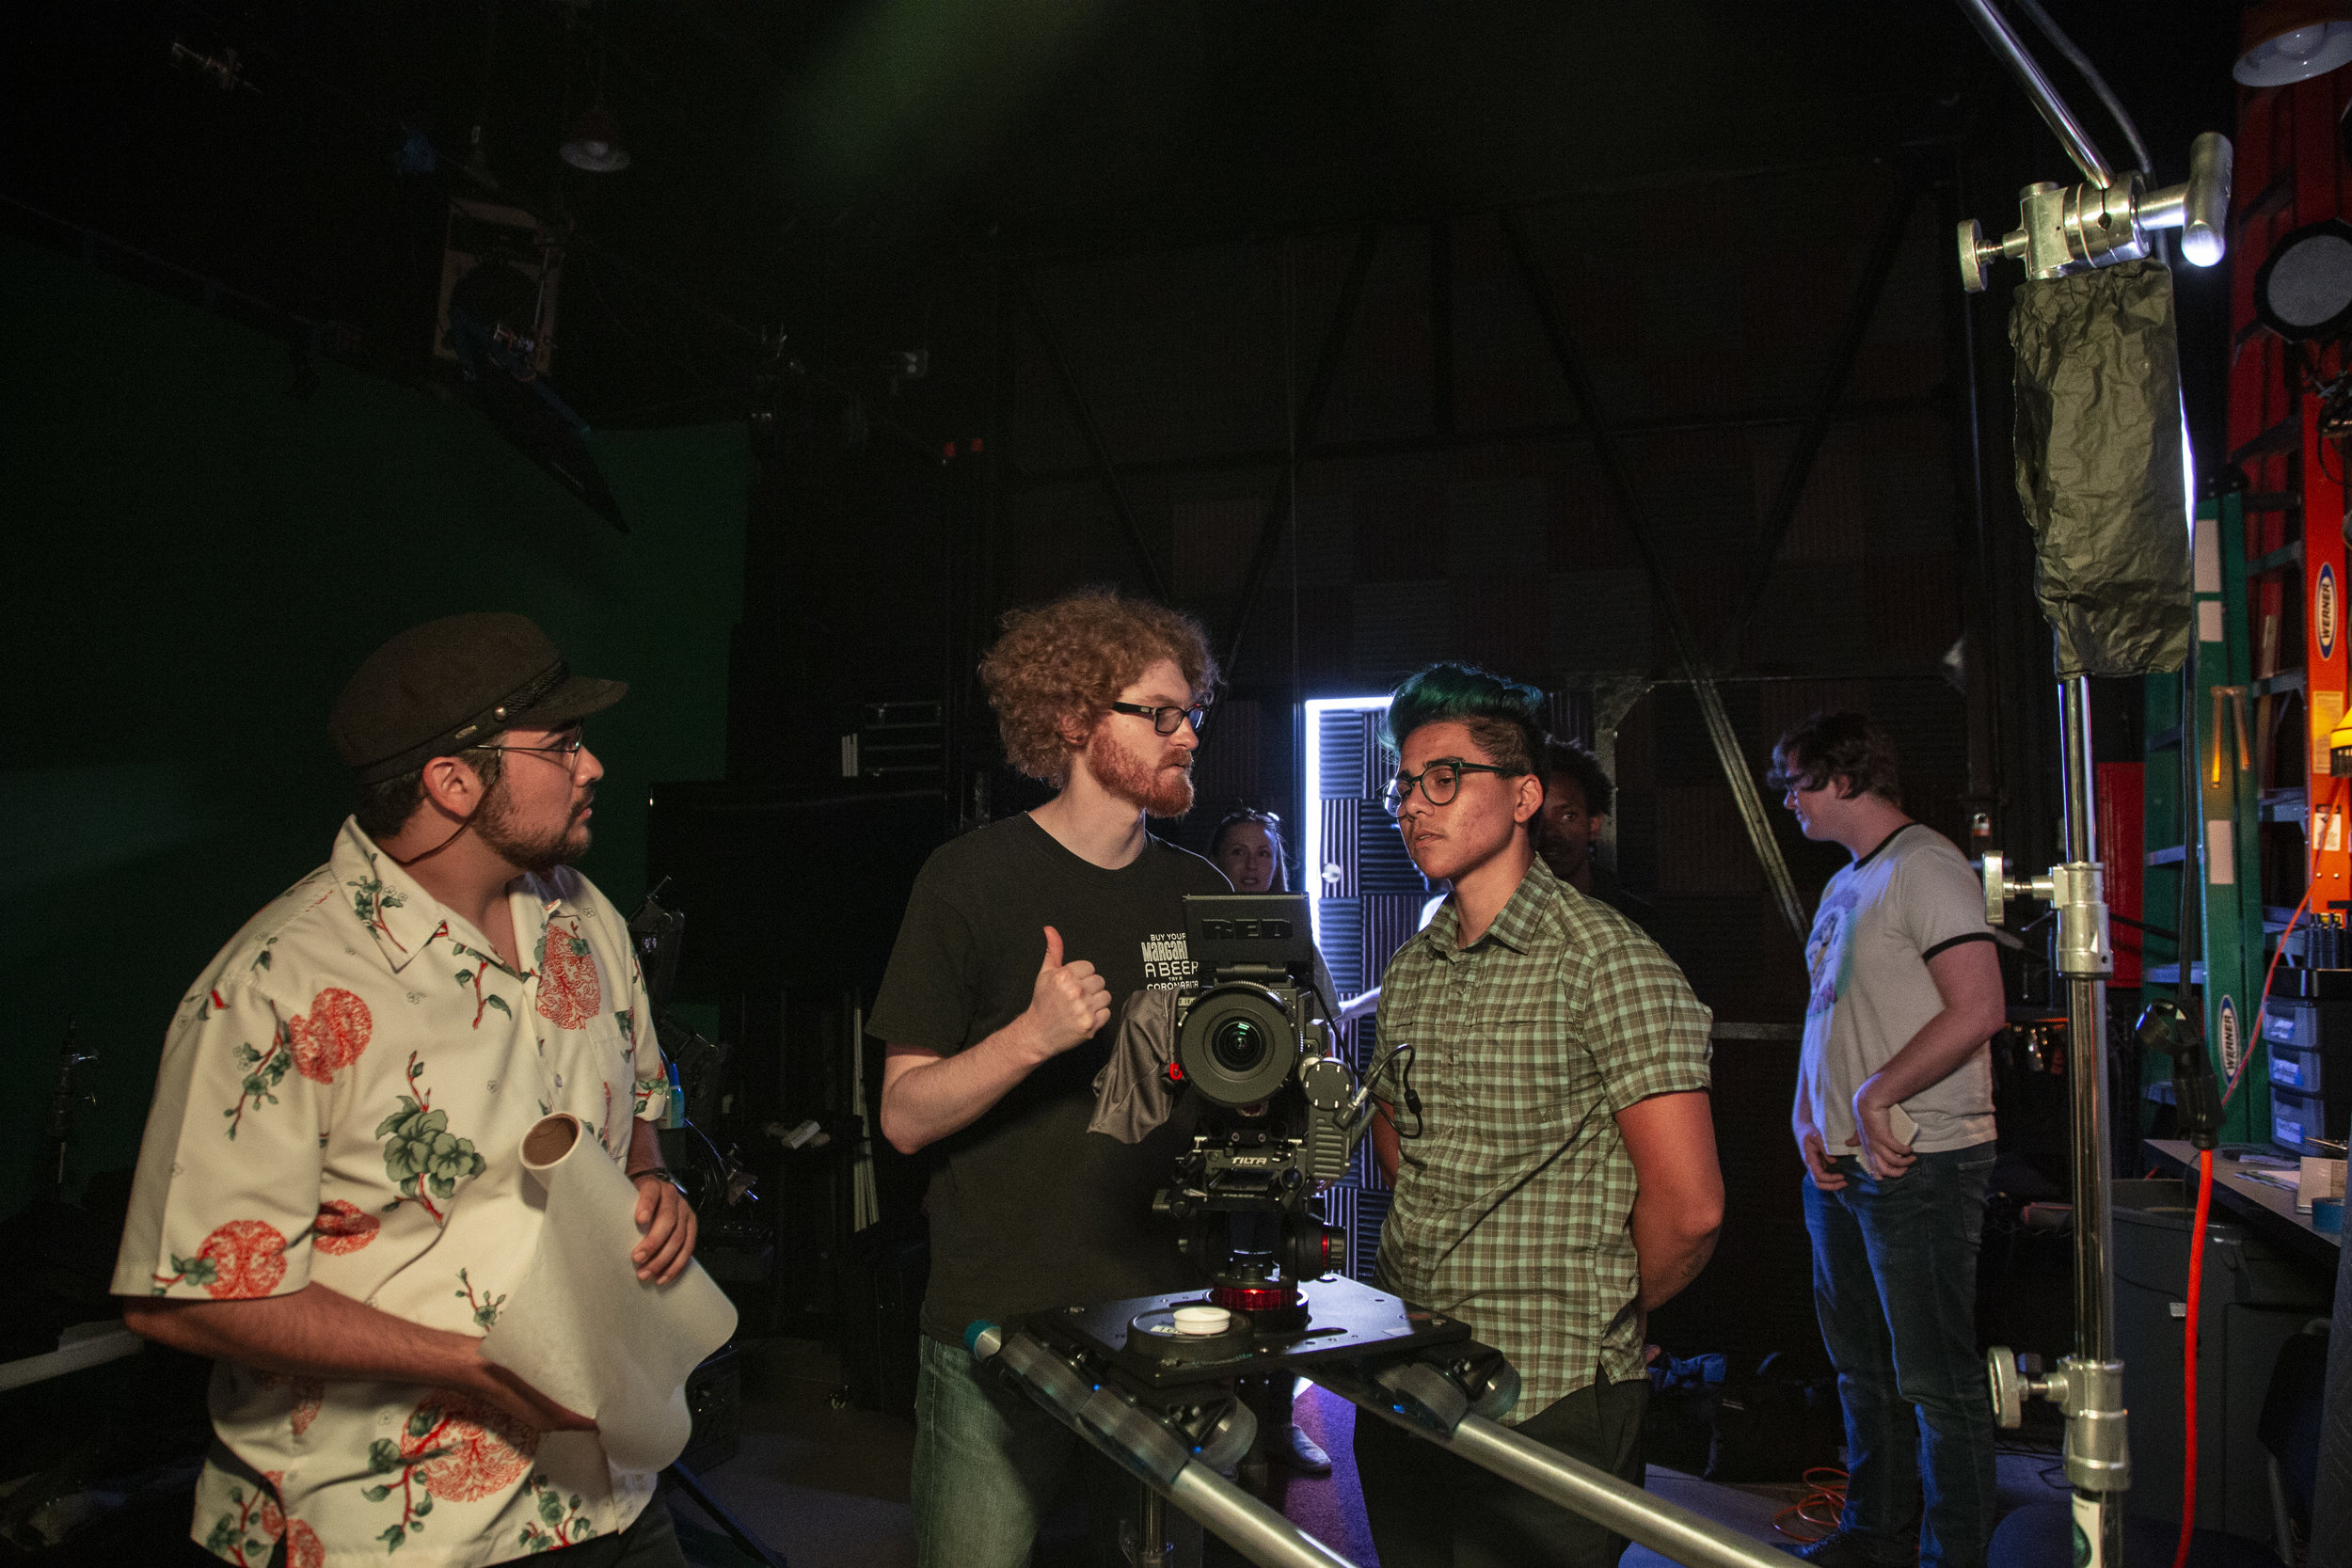 Director Landon Coats, with the camera team. Avery Ramirez Director of Photography and Jacob Gonzales 1st AC